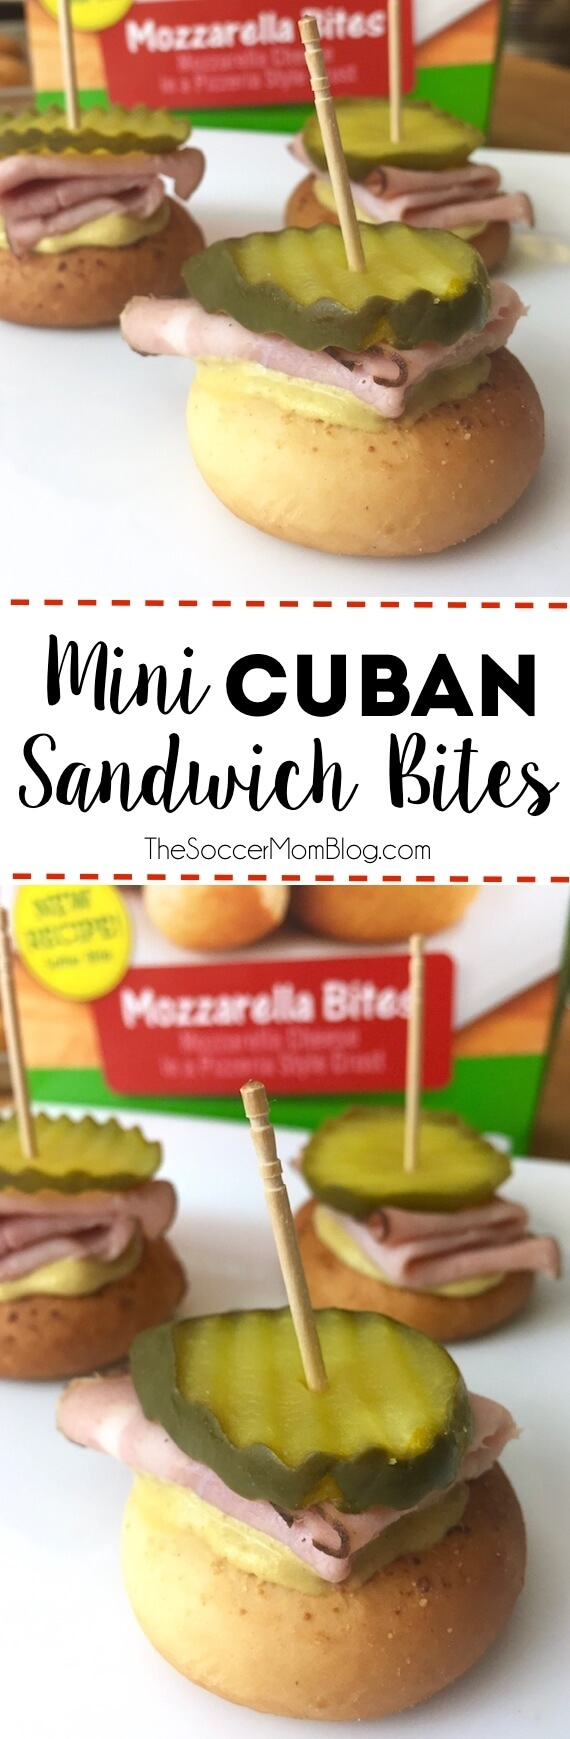 All the flavors of a Cuban sandwich in one tasty bite! Mini Cuban Sandwich Bites are the perfect game-day appetizer - easy to make & virtually mess-free!